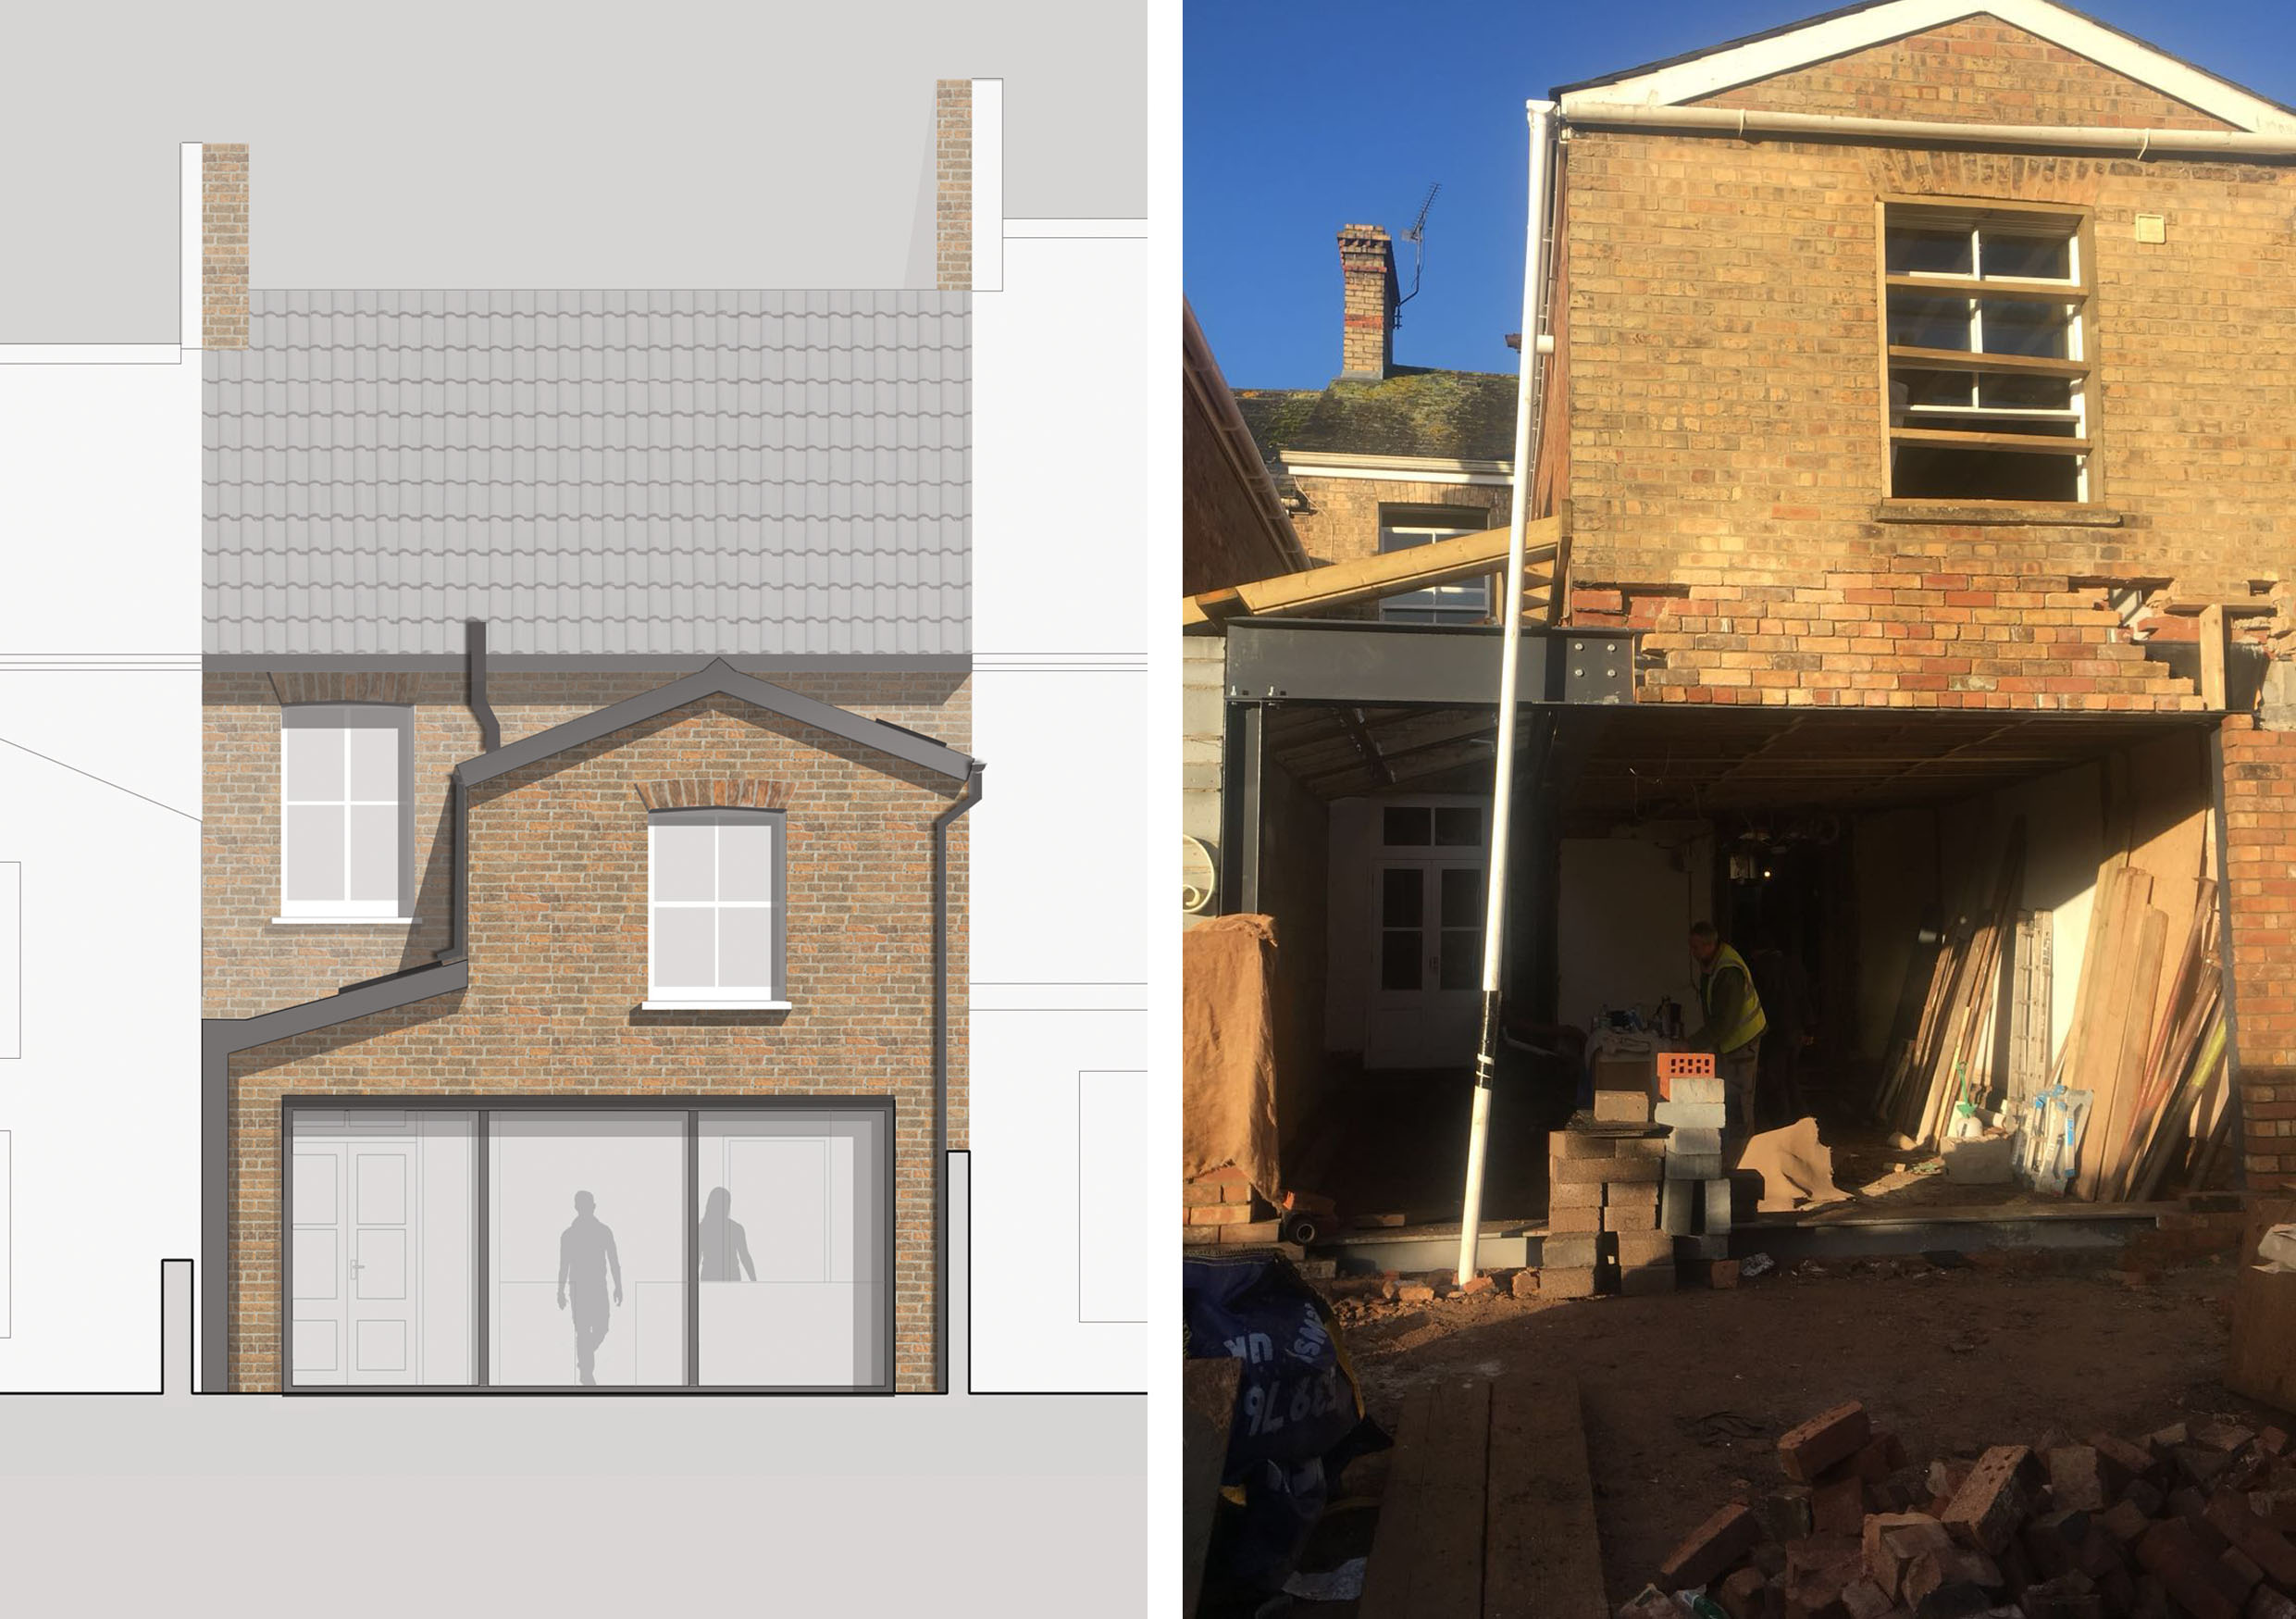 Consists of two images. The left an initial visualisation of the the rear elevation, highlighting the large picture window doors and the profile of the single story side extension. The right image is a onsite progress image showing the form of the extension taking shape.